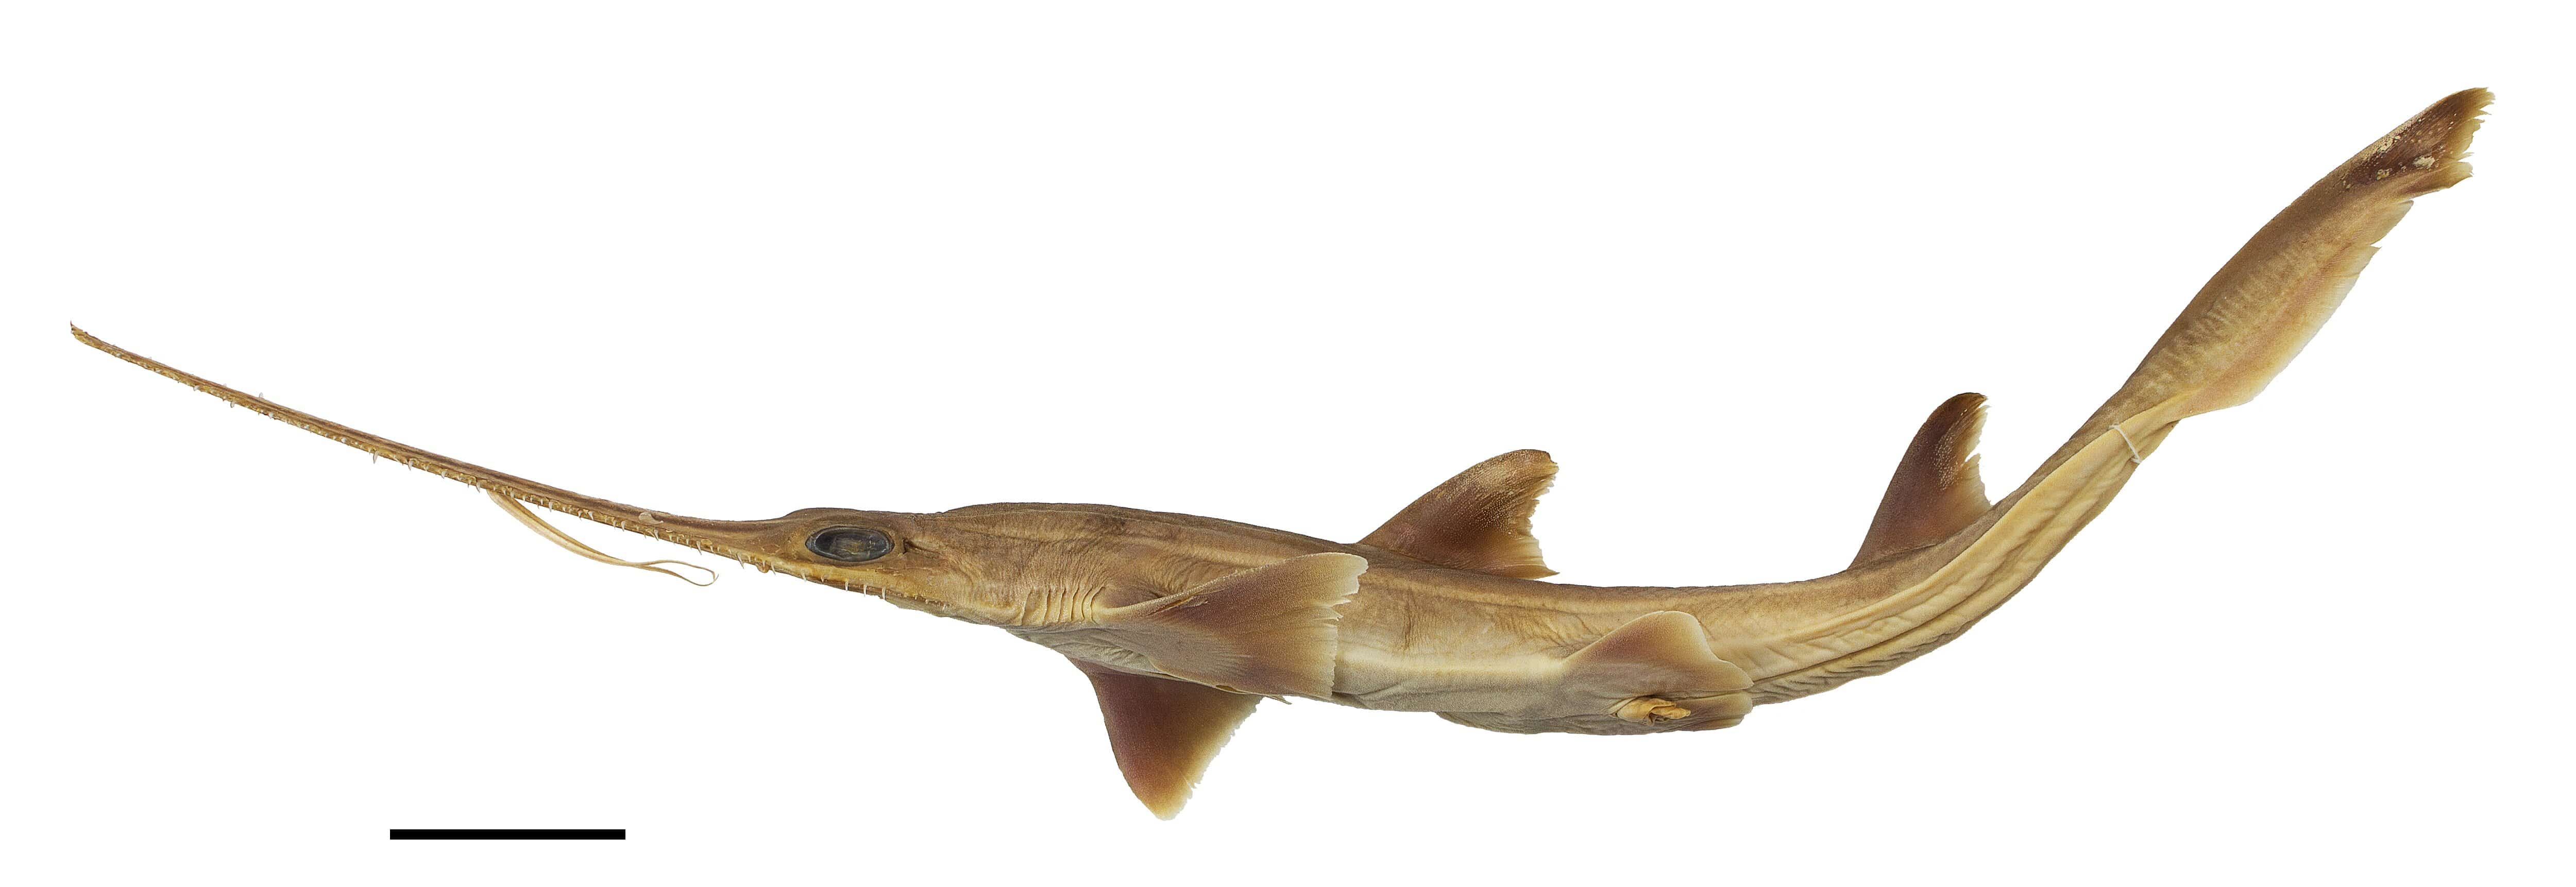 Scientists discover two new shark species with chainsaw-like noses